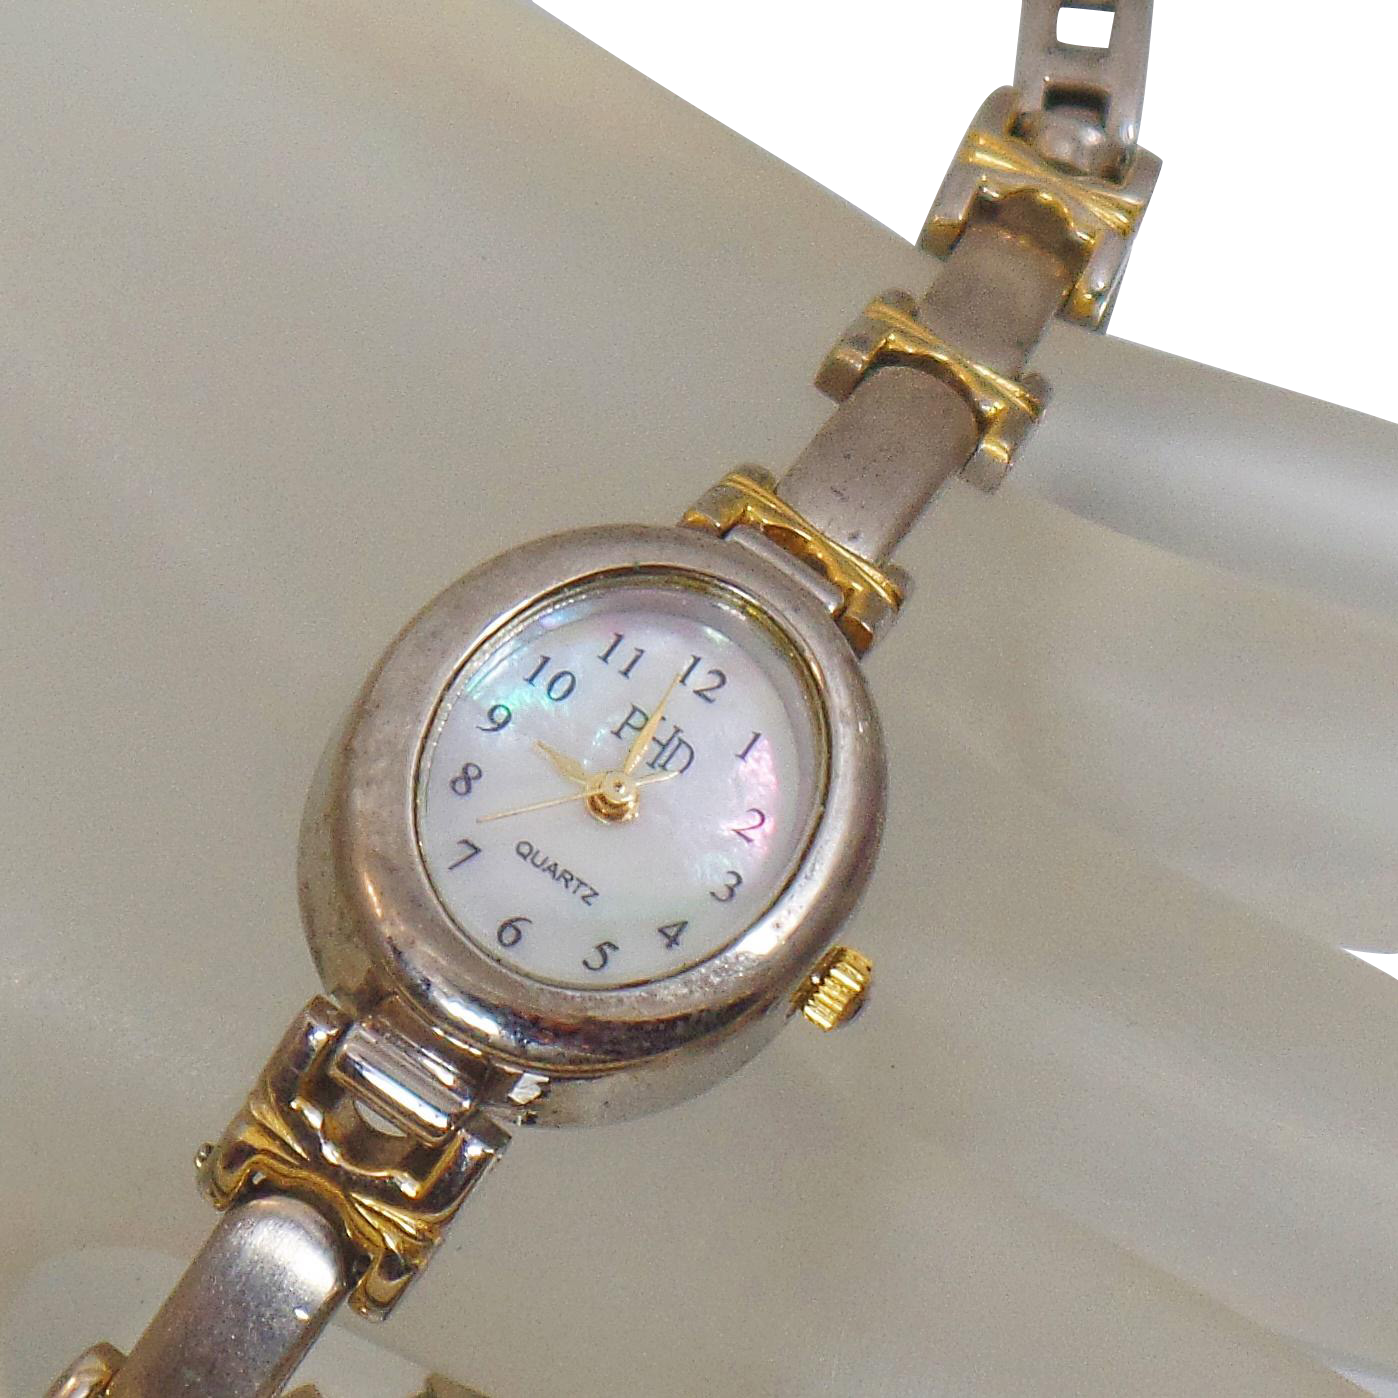 Vintage Mother of Pearl Shell Ladies Watch. PHD. Mother of Pearl Face and Band Wrist Watch. Silver and Gold Women's Watch.